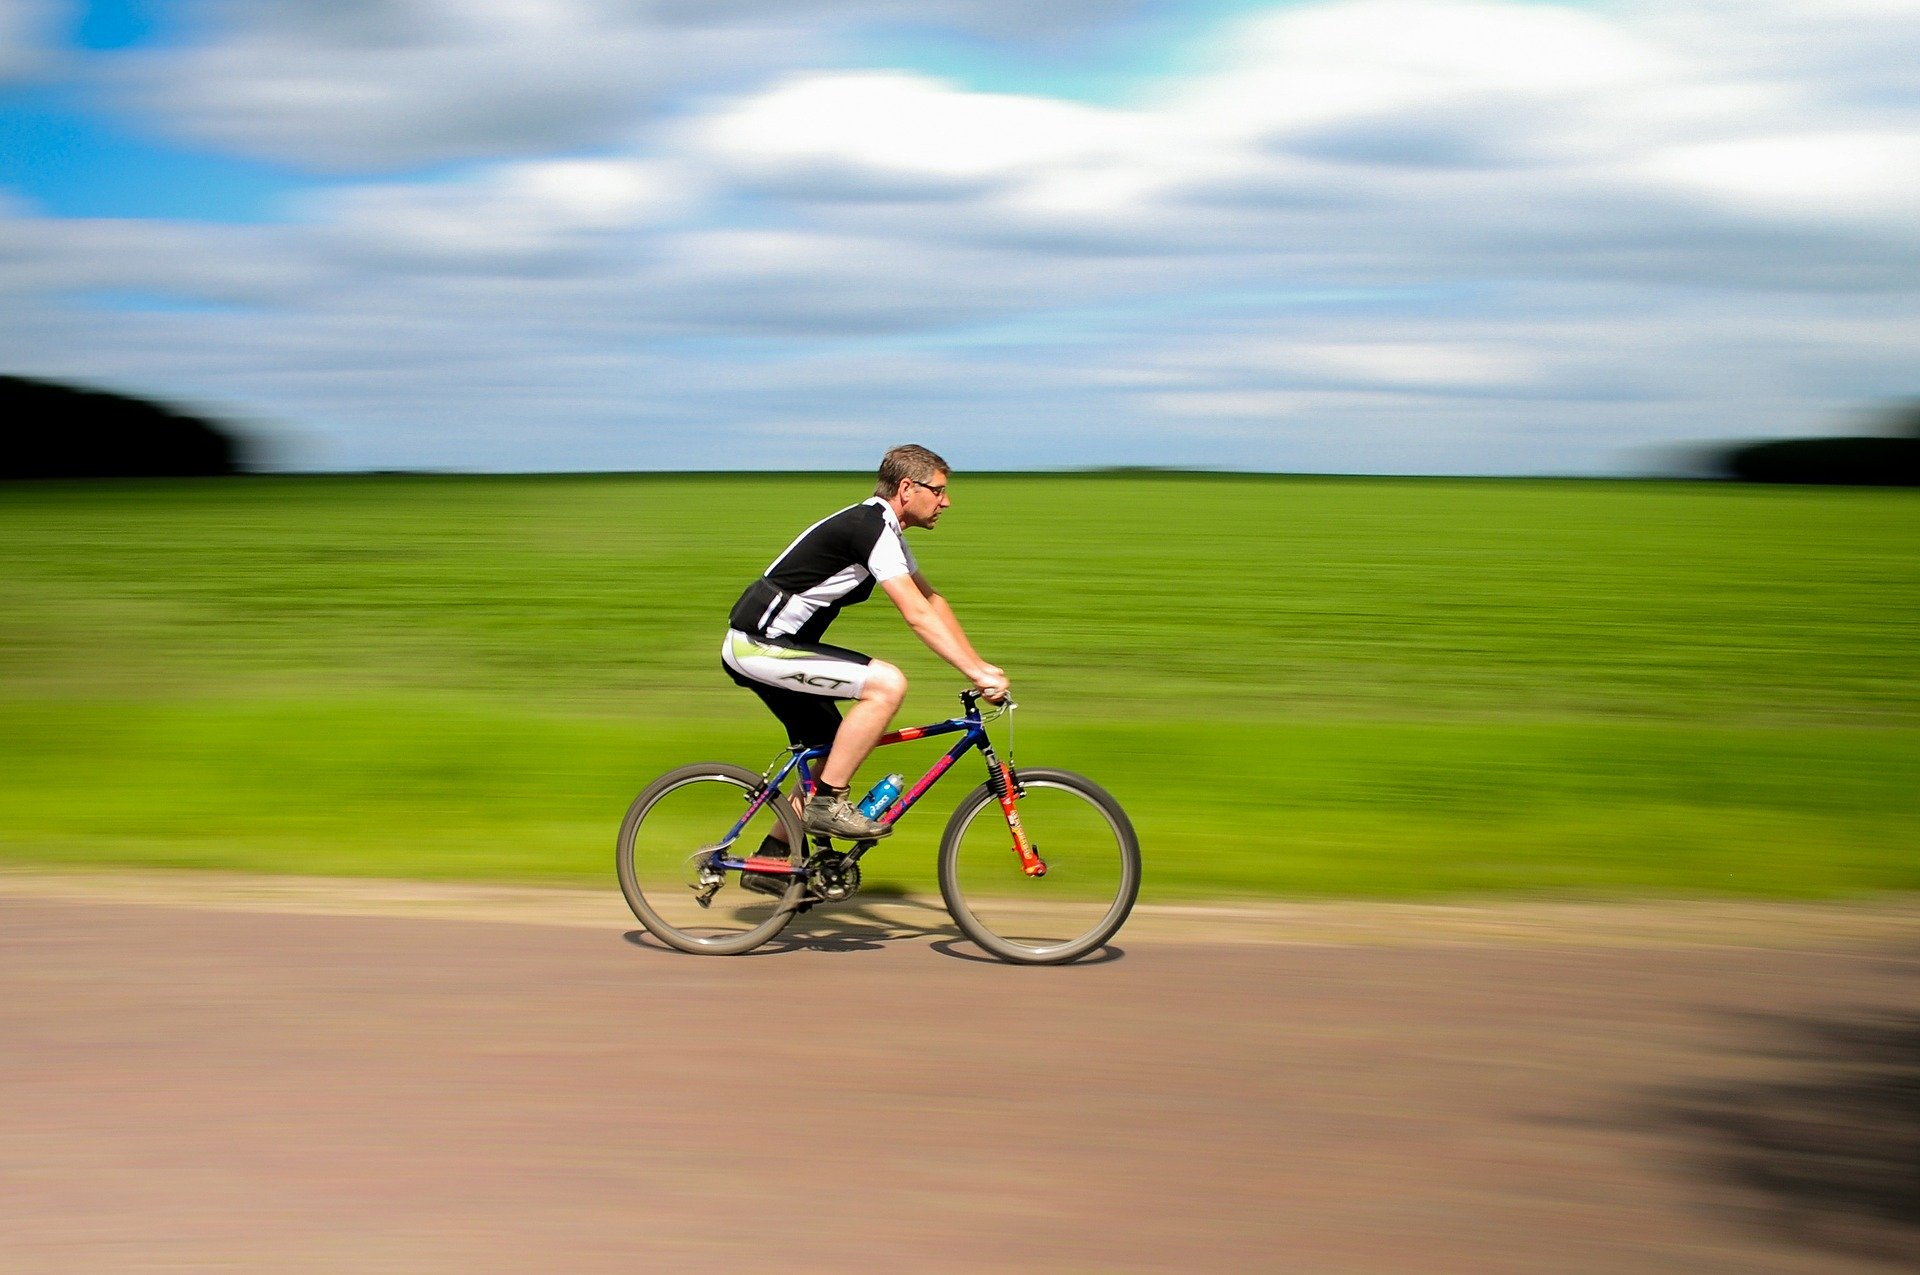 bicycle-384566_1920